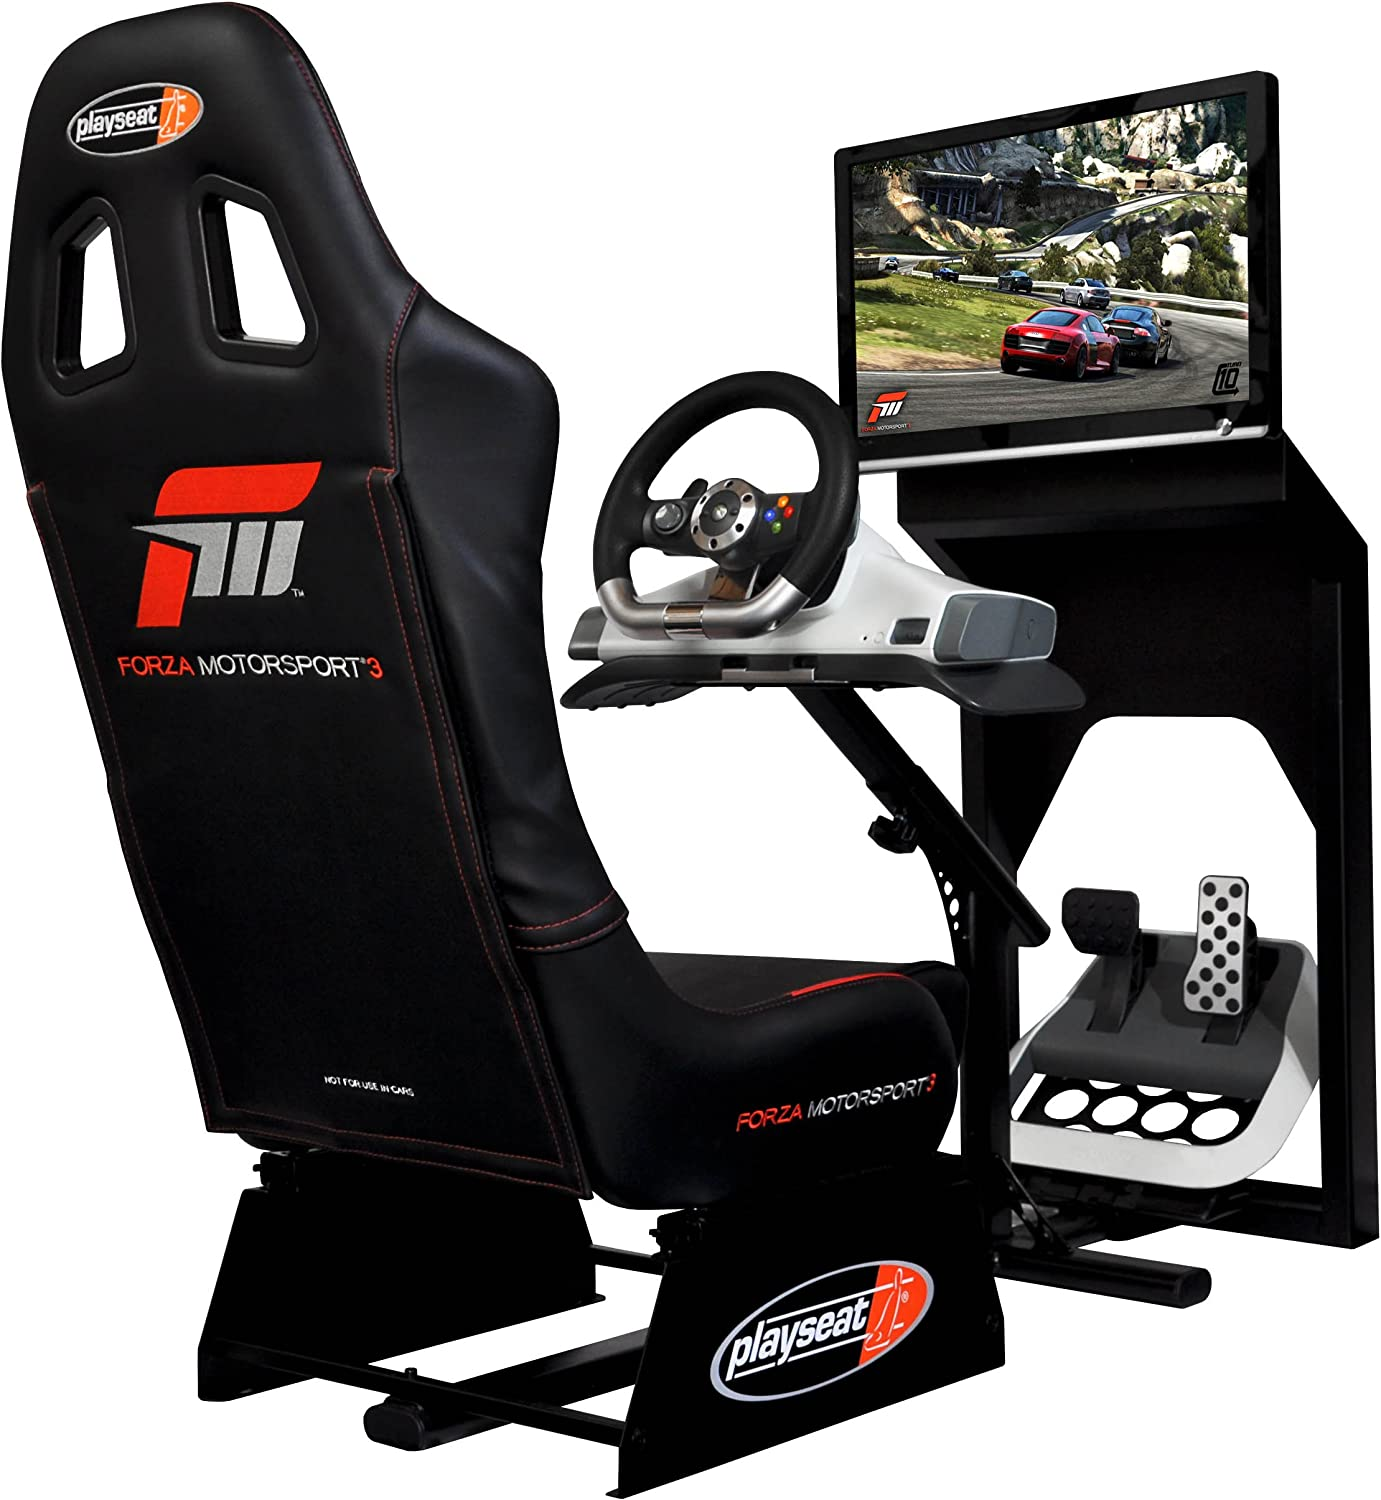 Genial Amazon.com: Playseat Limited Edition Forza Motorsport 3 Evolution Racing  Seat: Video Games